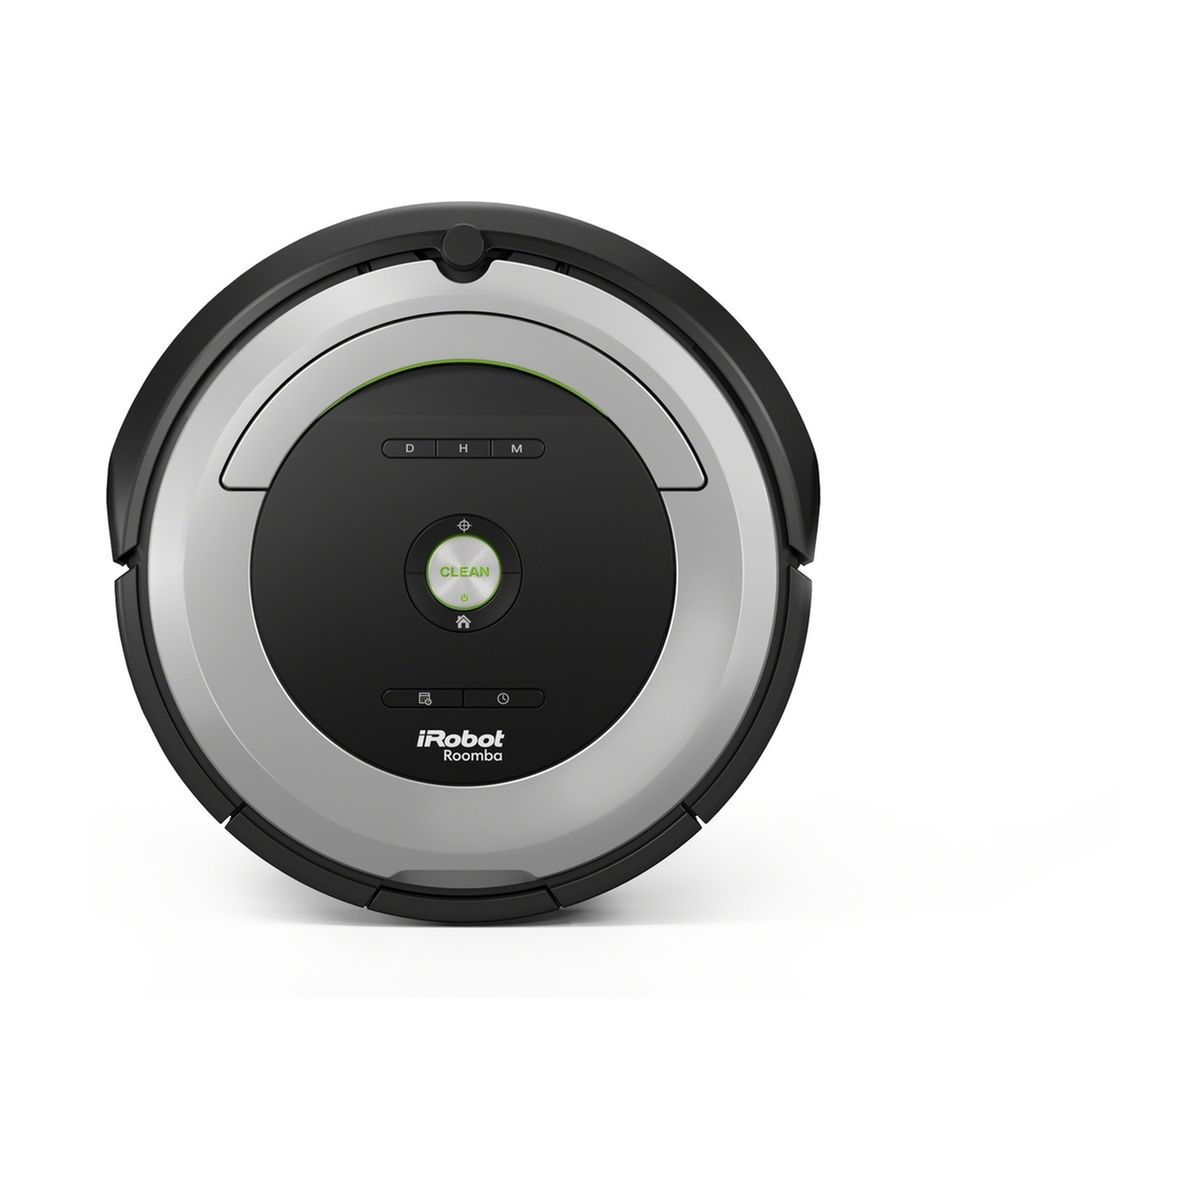 Aspirateur Robot Irobot Aspirateur Robot Irobot Roomba 680 Products Robot Vacuums Et